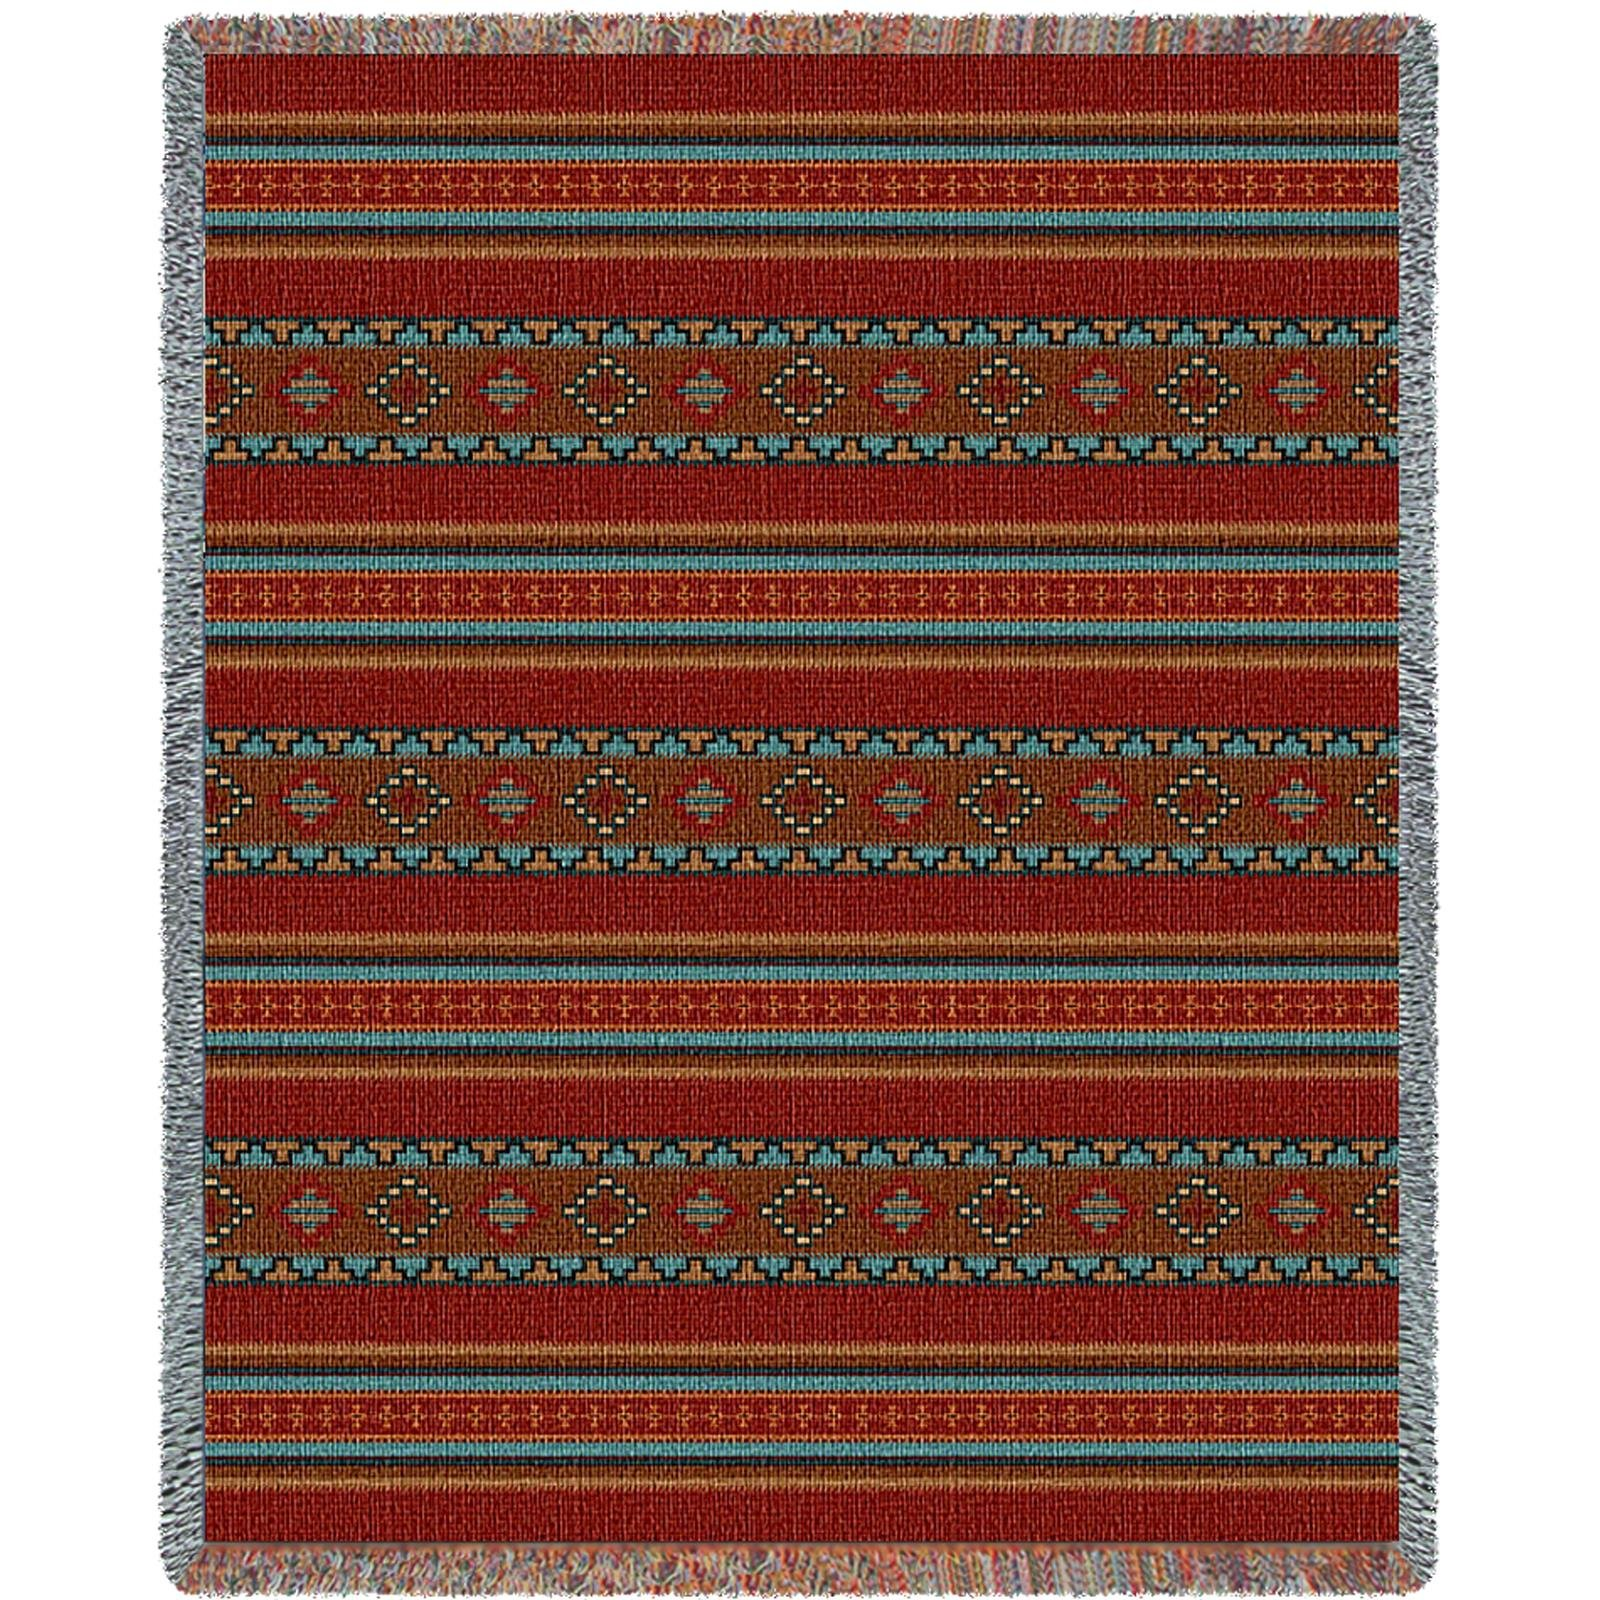 Pure Country 5381-T Saddle blanket Red Blanket Tapestry Throw